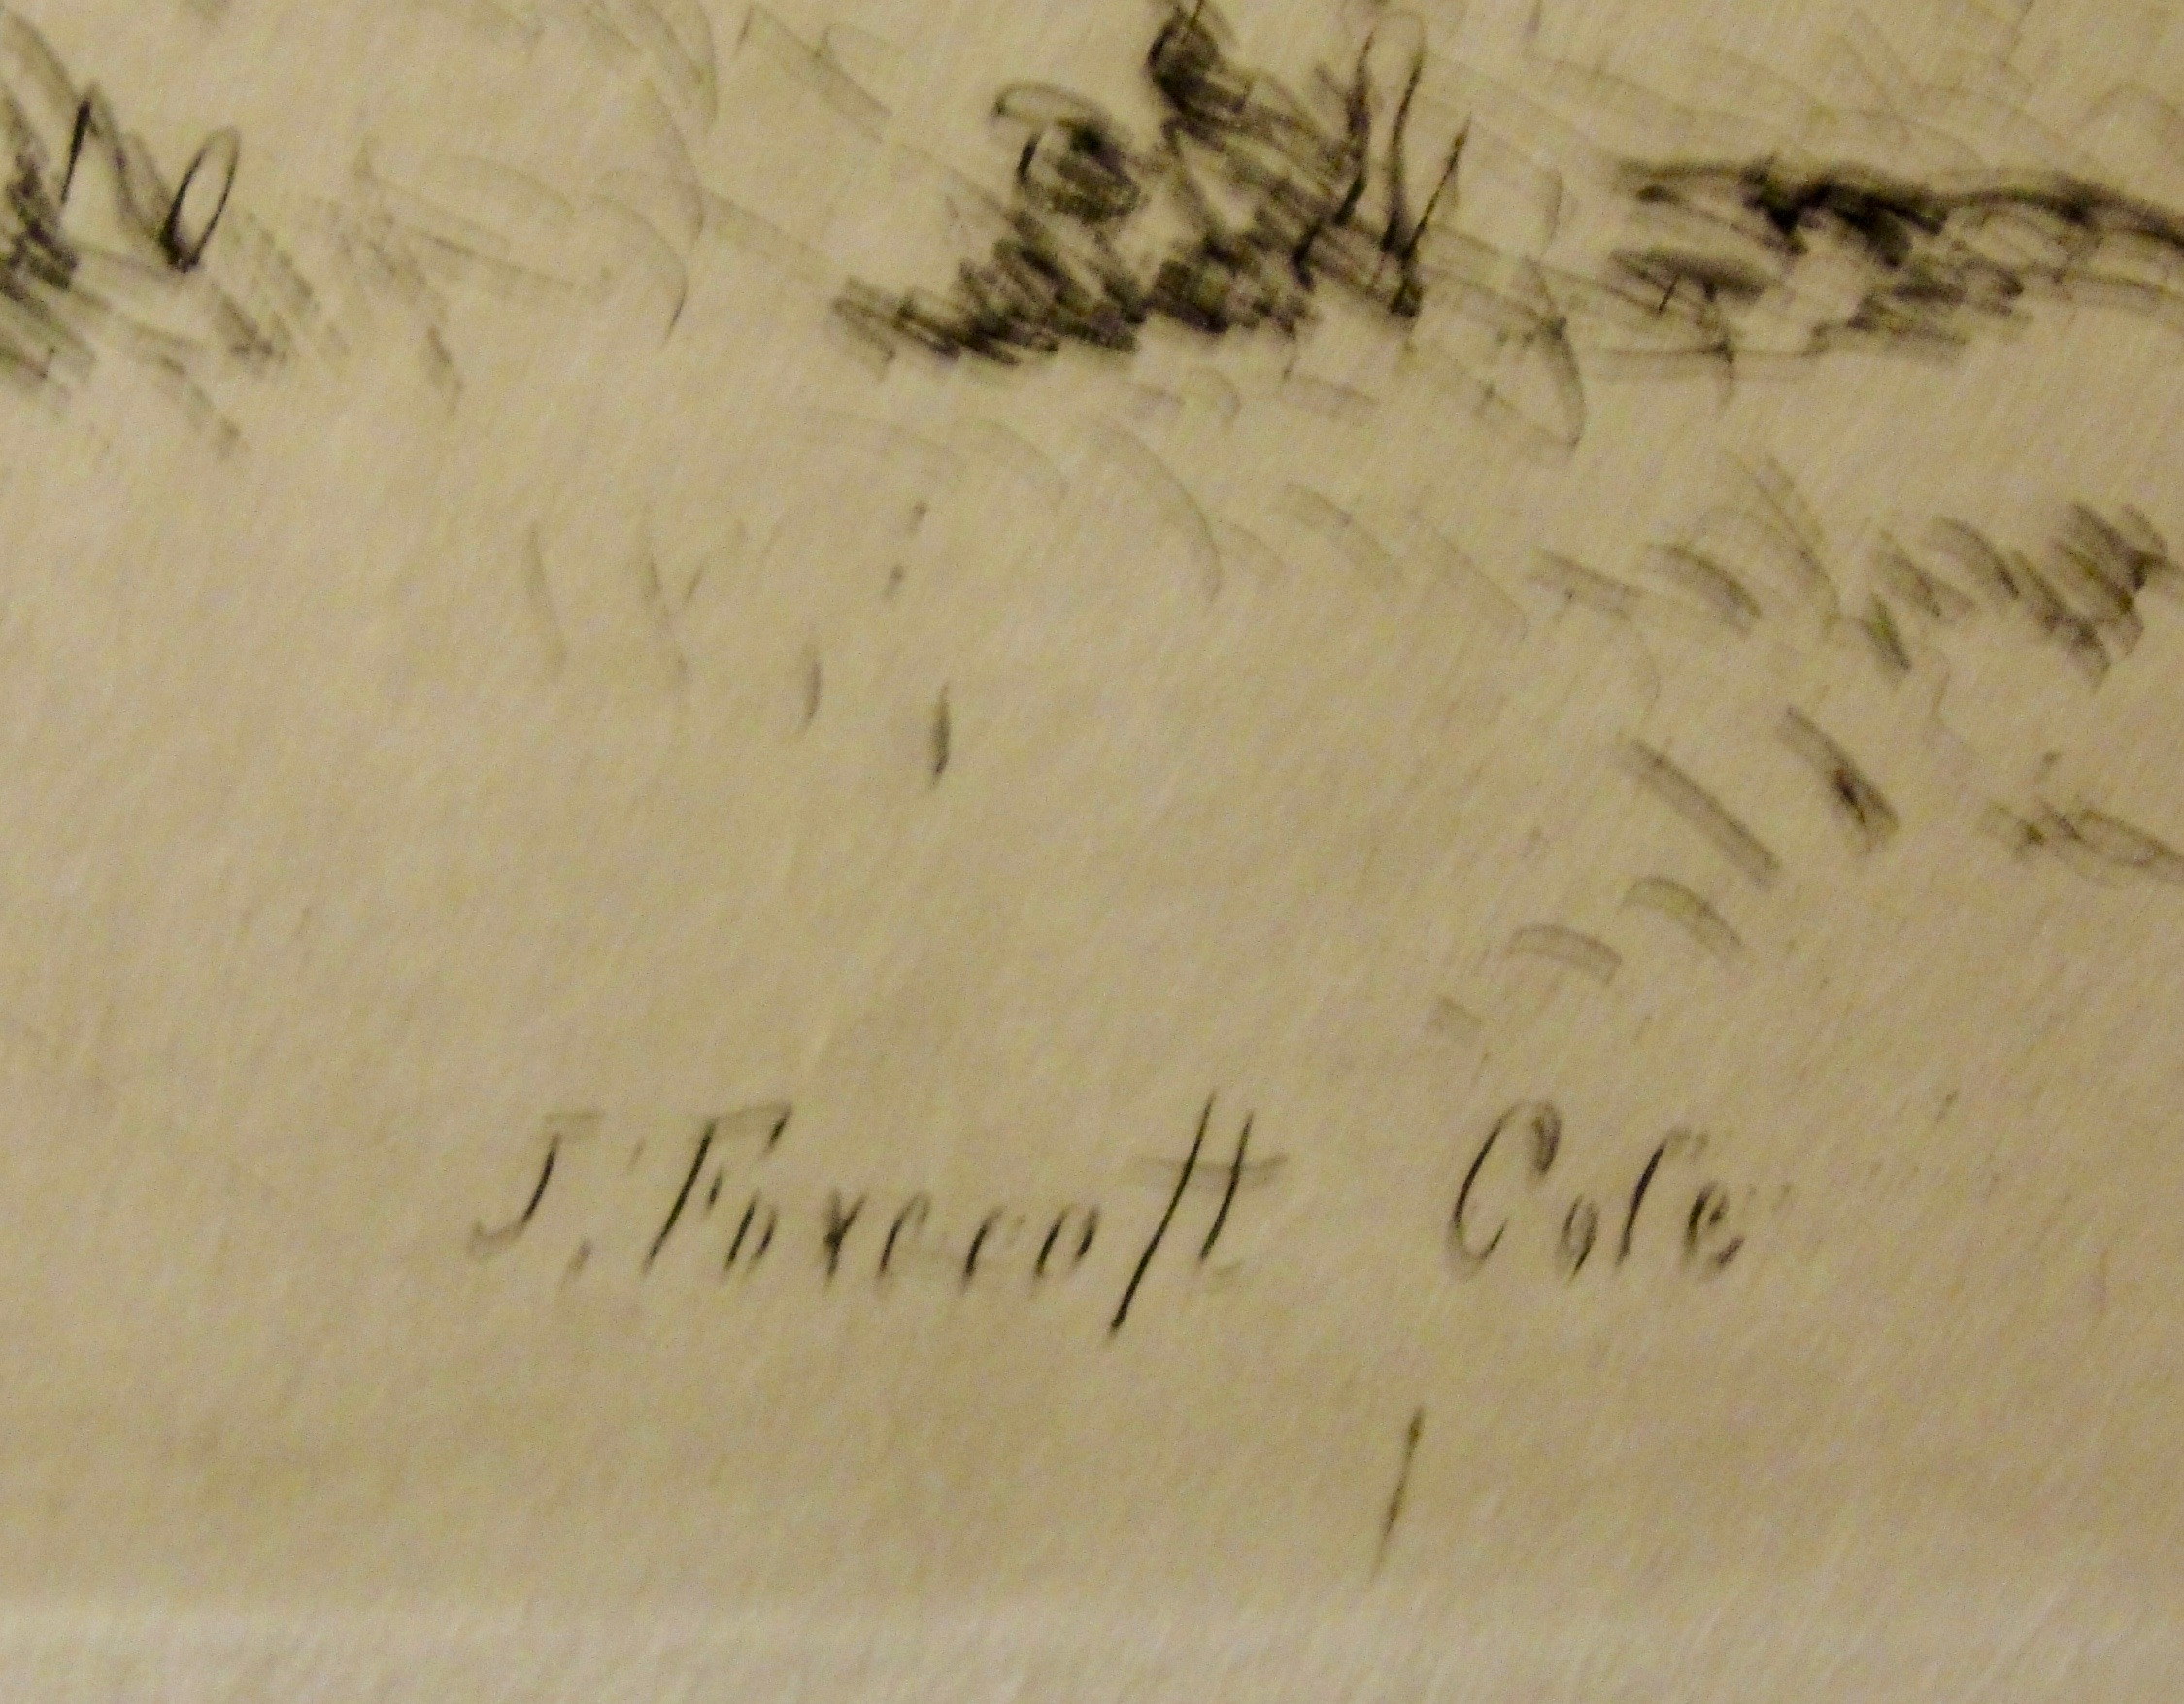 Signature in the engraving